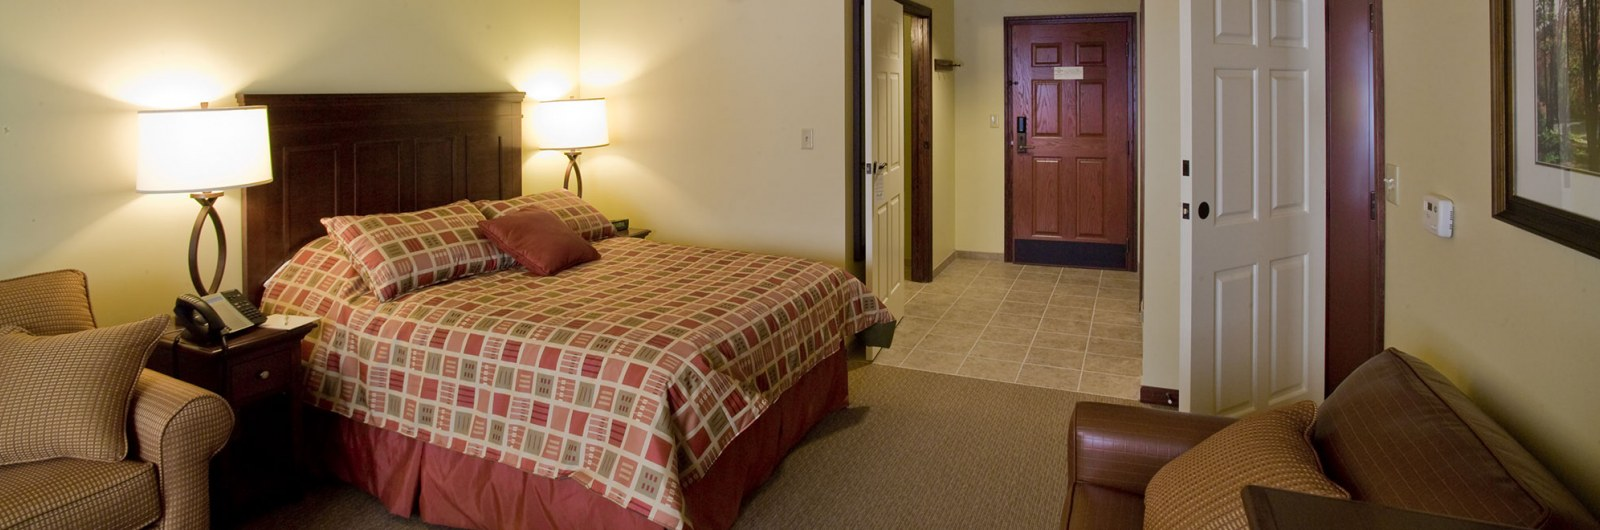 Queen size hotel room at the Tamarack Club in Ellicottville New York